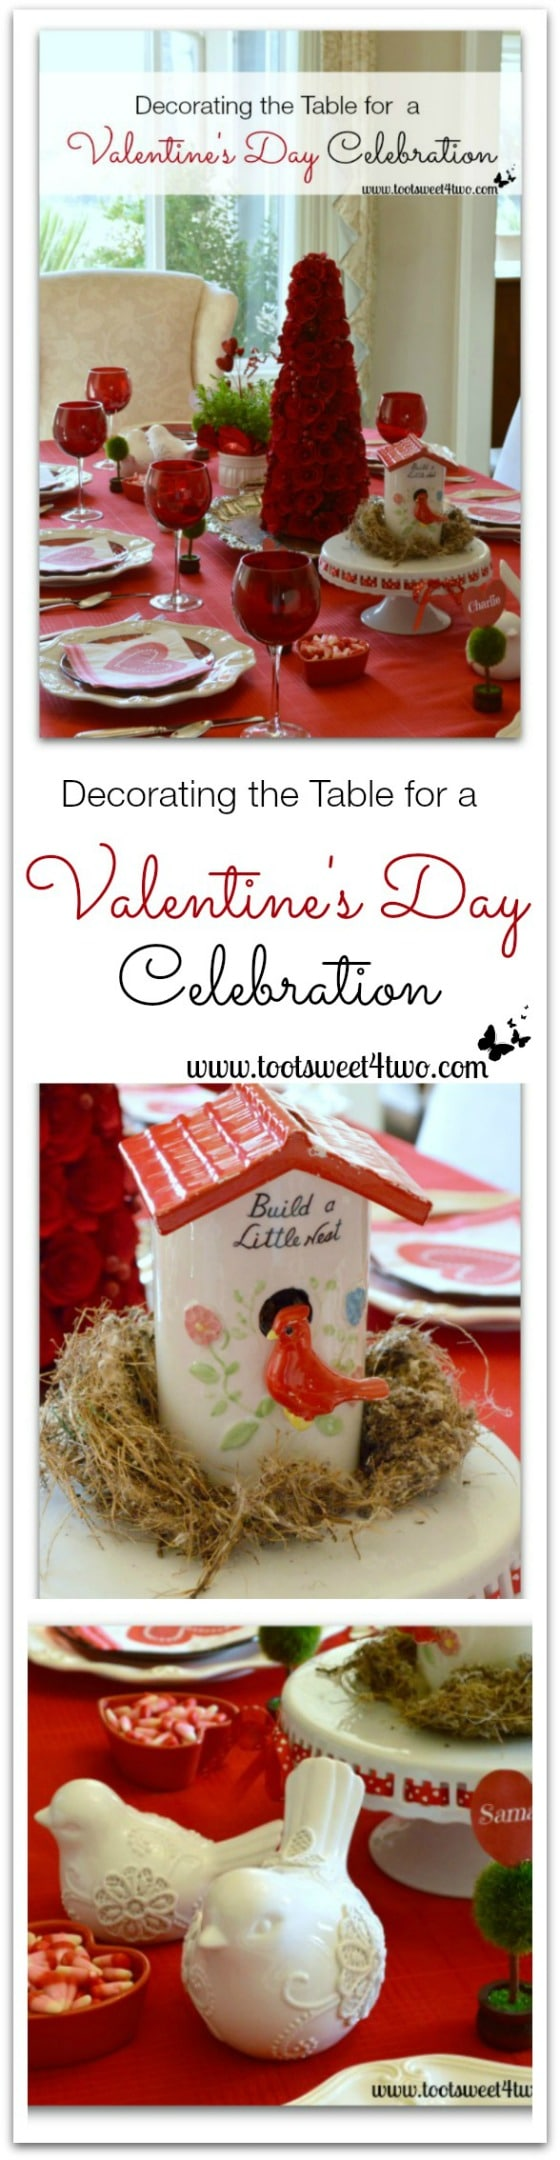 Decorating the Table for a Valentine's Day Celebration collage